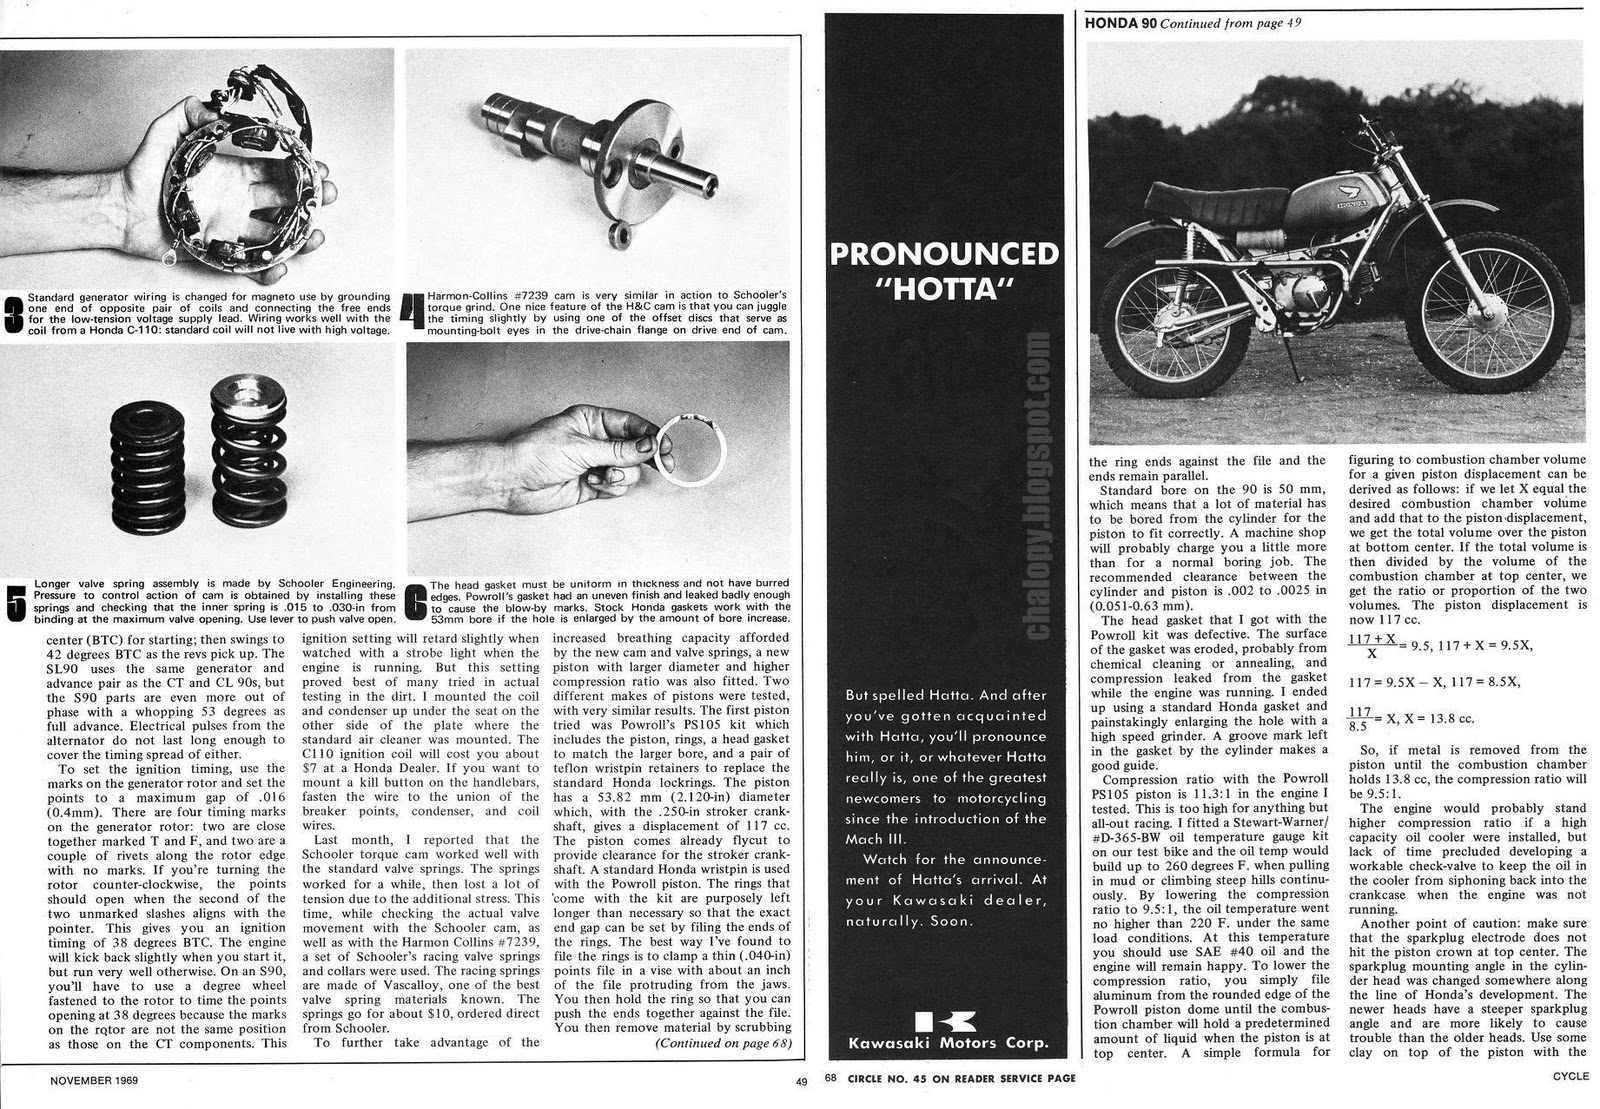 Chalopy October 2010 The Above Picture Shows Honda Cb100 Pictorial Diagram It 90 Hop Up Part 2 By Jess Thomas Cycle Magazine 69